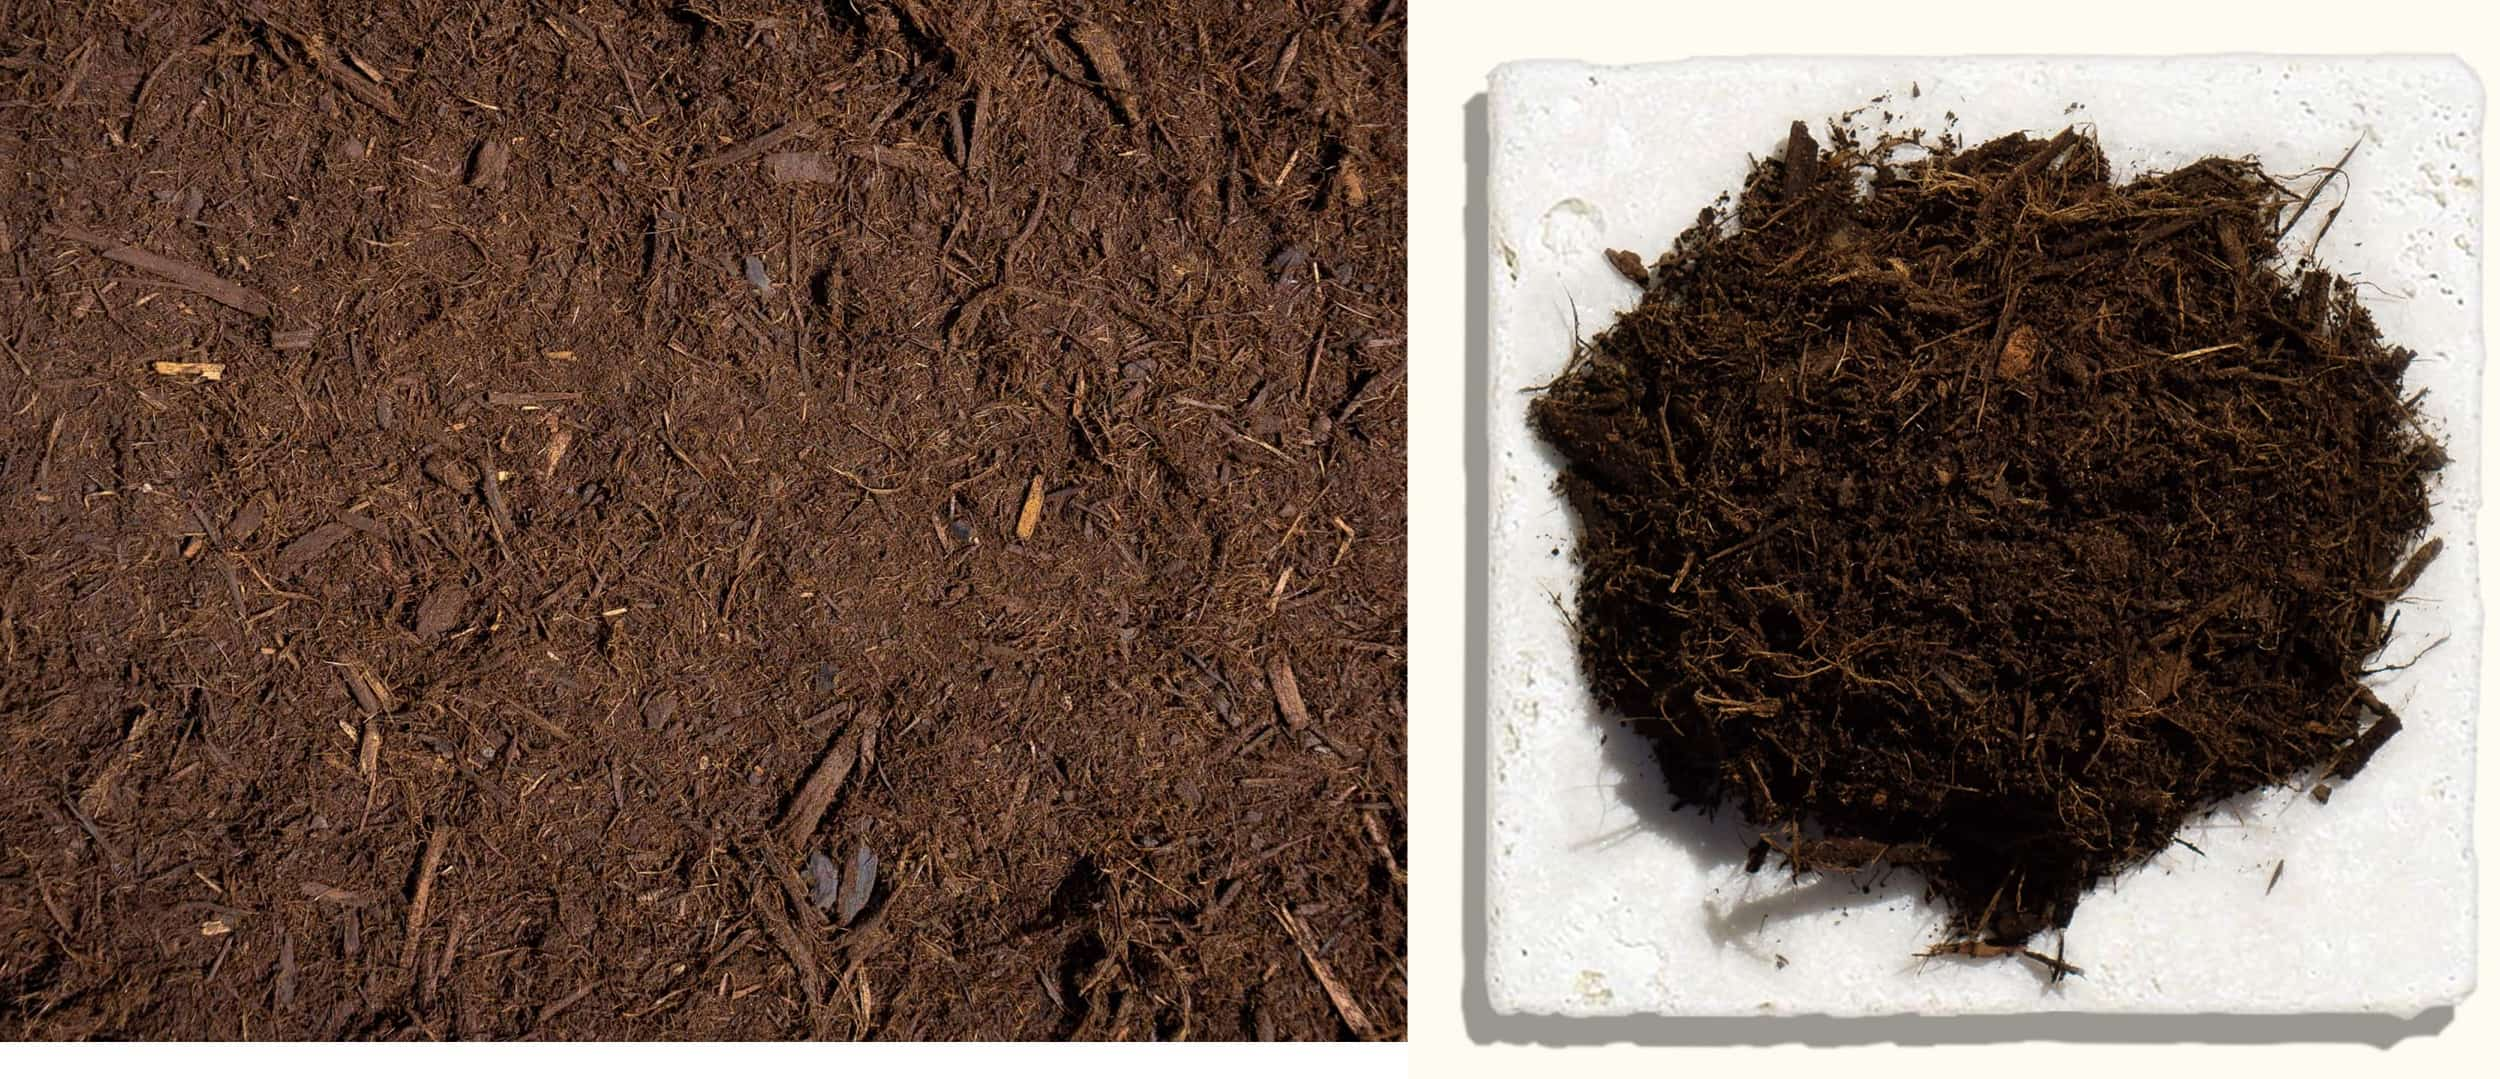 Premium Shredded Hardwood Bark Mulch $43.99 $45.99 $45.99 - Made from only the bark of hardwood logs. This mulch is processed two times and has a shredded look to it. This mulch binds together well keeping it in place for a long time. Our premium grade hardwood bark mulch is double processed and screened for size.Hardwood bark is a lightweight material that is easy to handle and provides year-round benefits to all types of plantings. It naturally decomposes, providing valuable nutrients to surrounding plants.